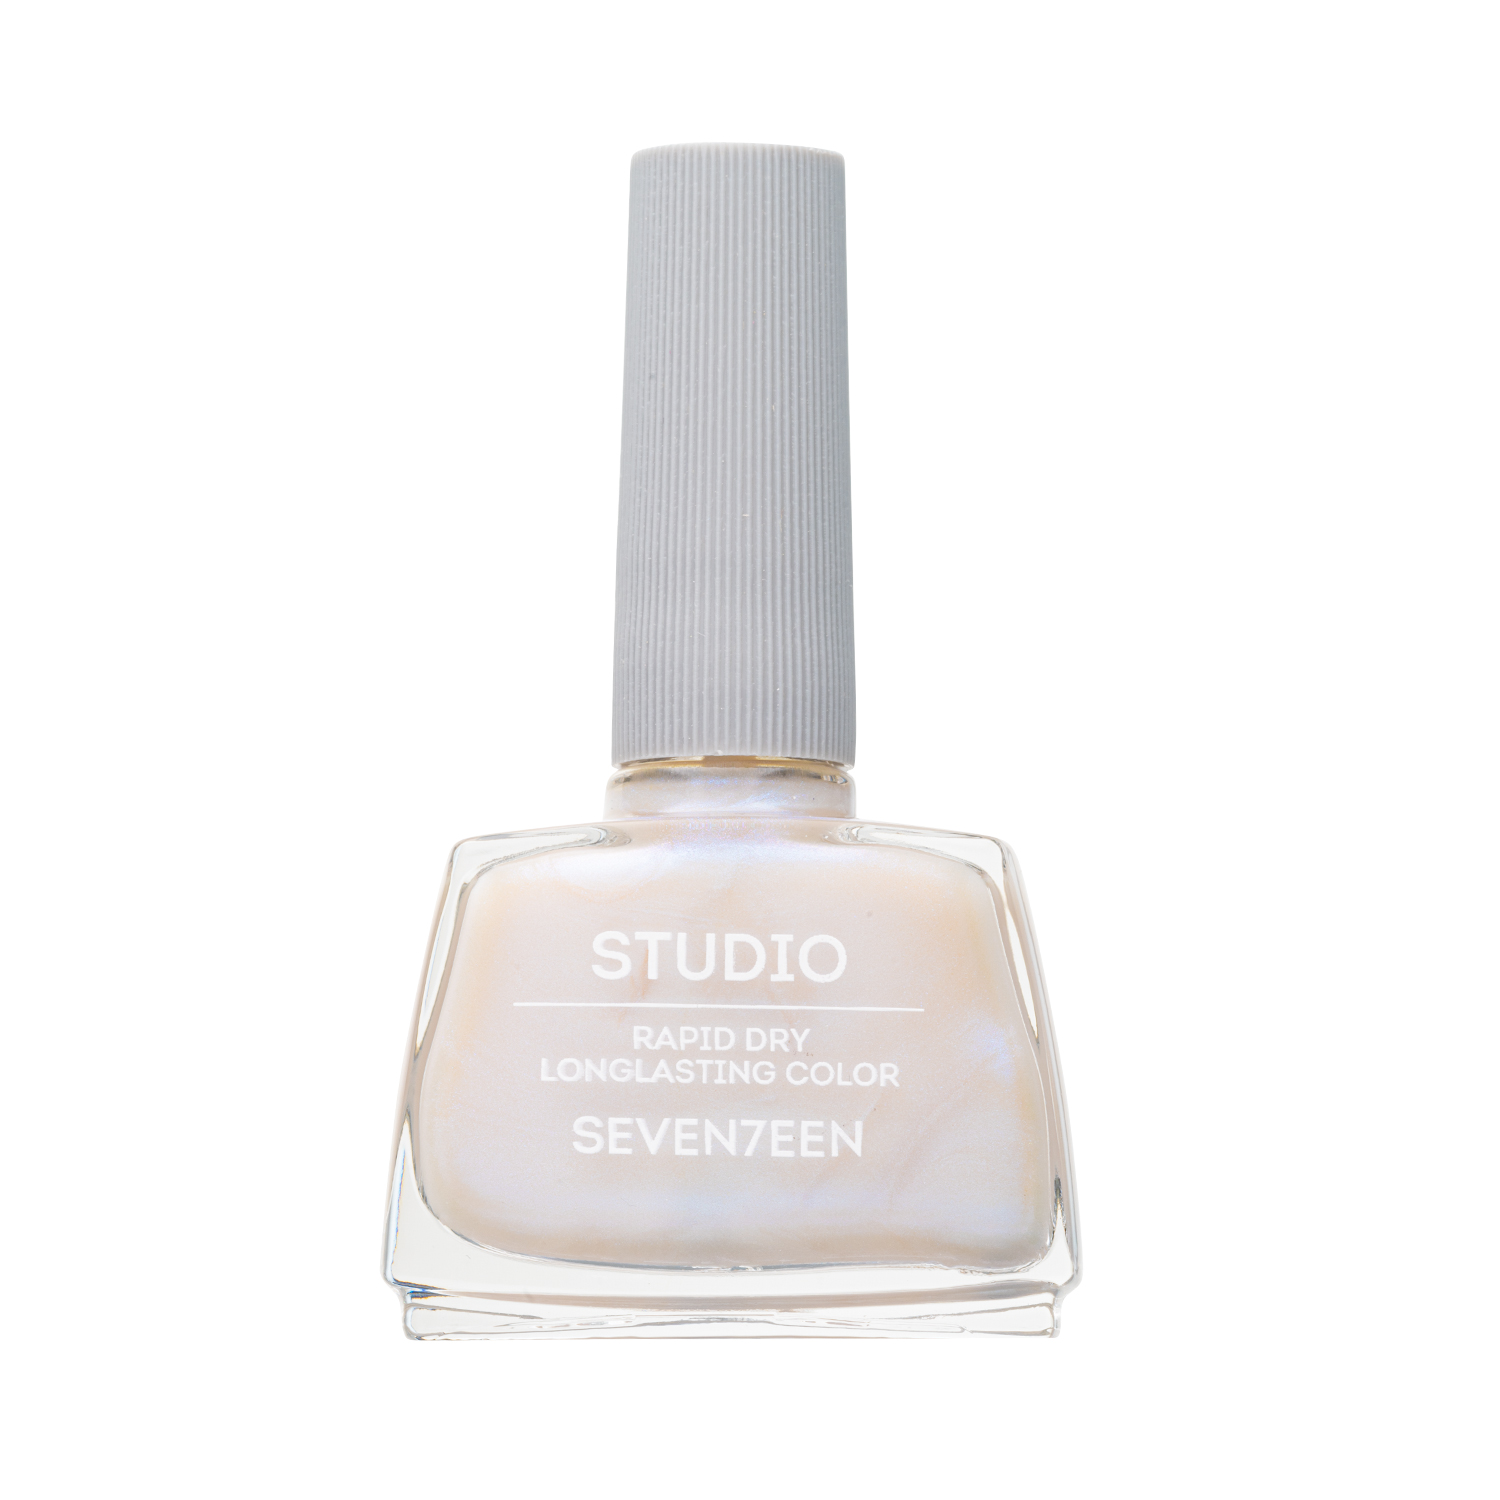 Studio Rapid Dry Longlasting Color